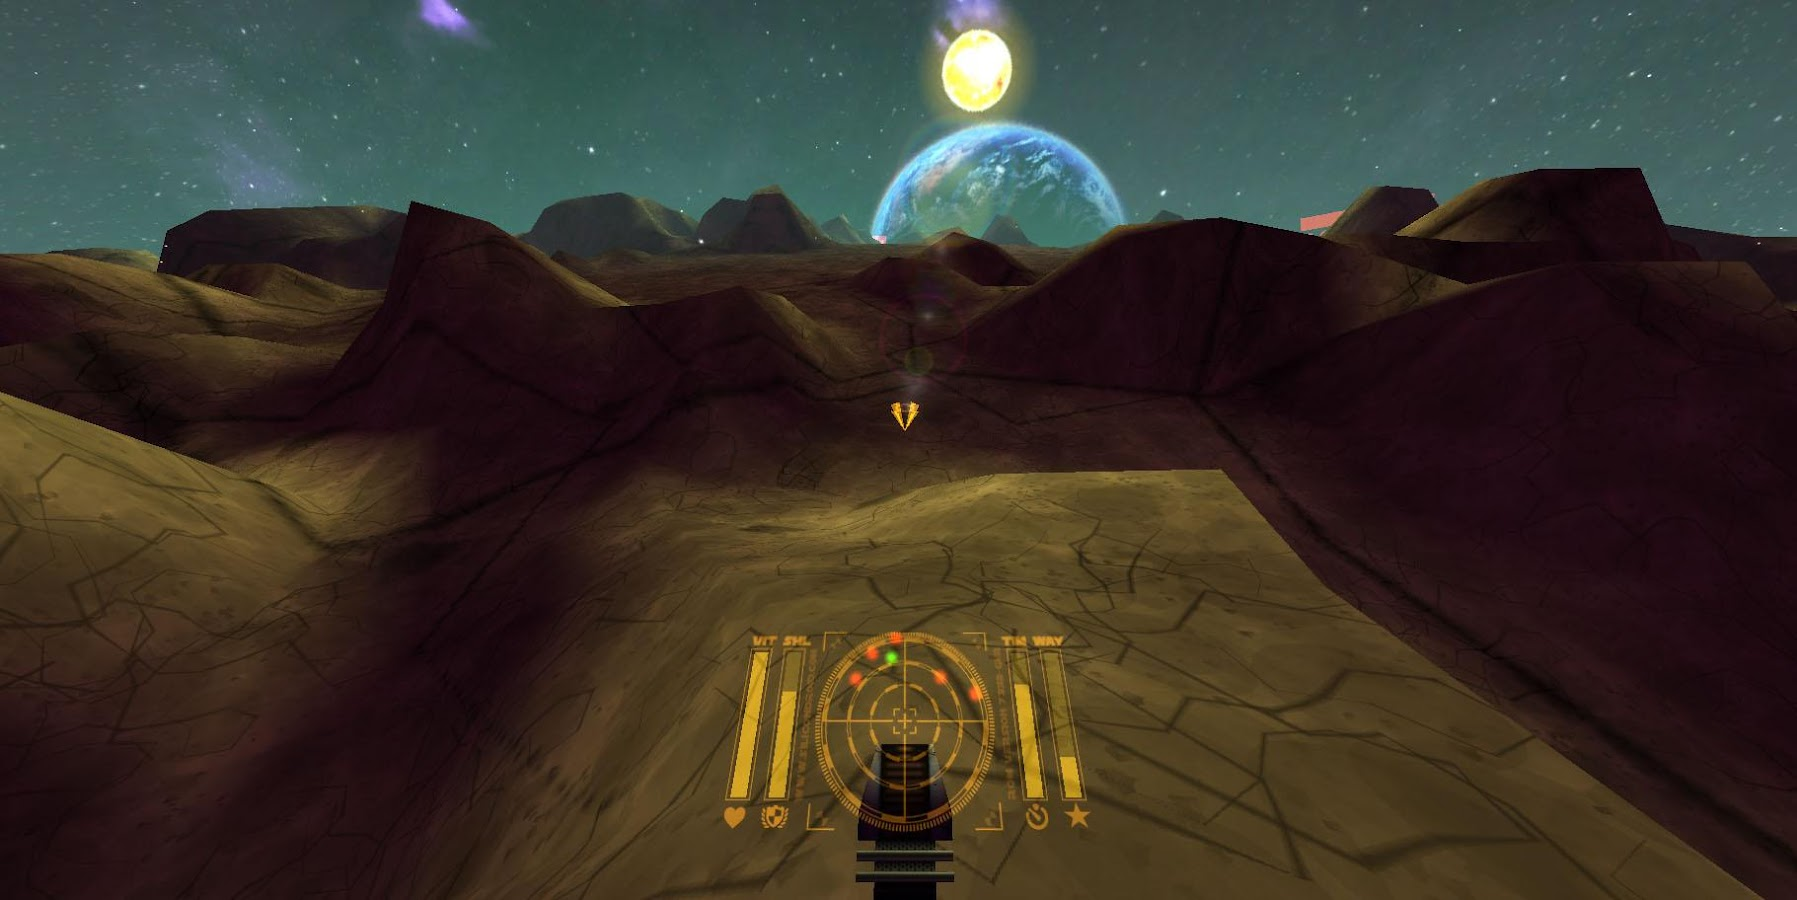 Galaxy VR Virtual Reality Game Screenshot 4